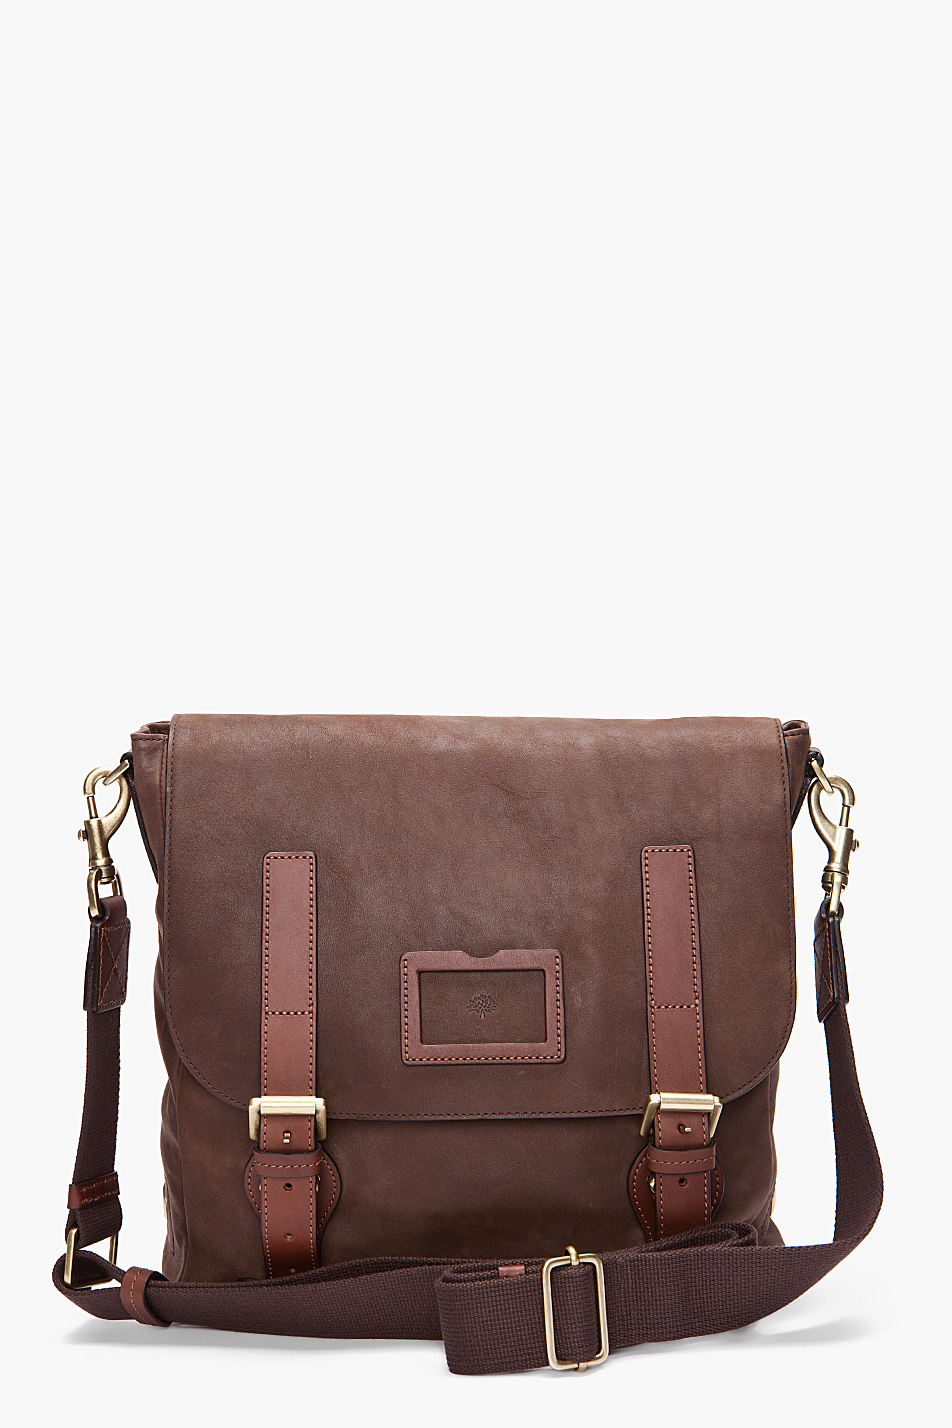 ... australia lyst mulberry rockley messenger bag in brown for men eb174  fa5ad 752612f1dd554